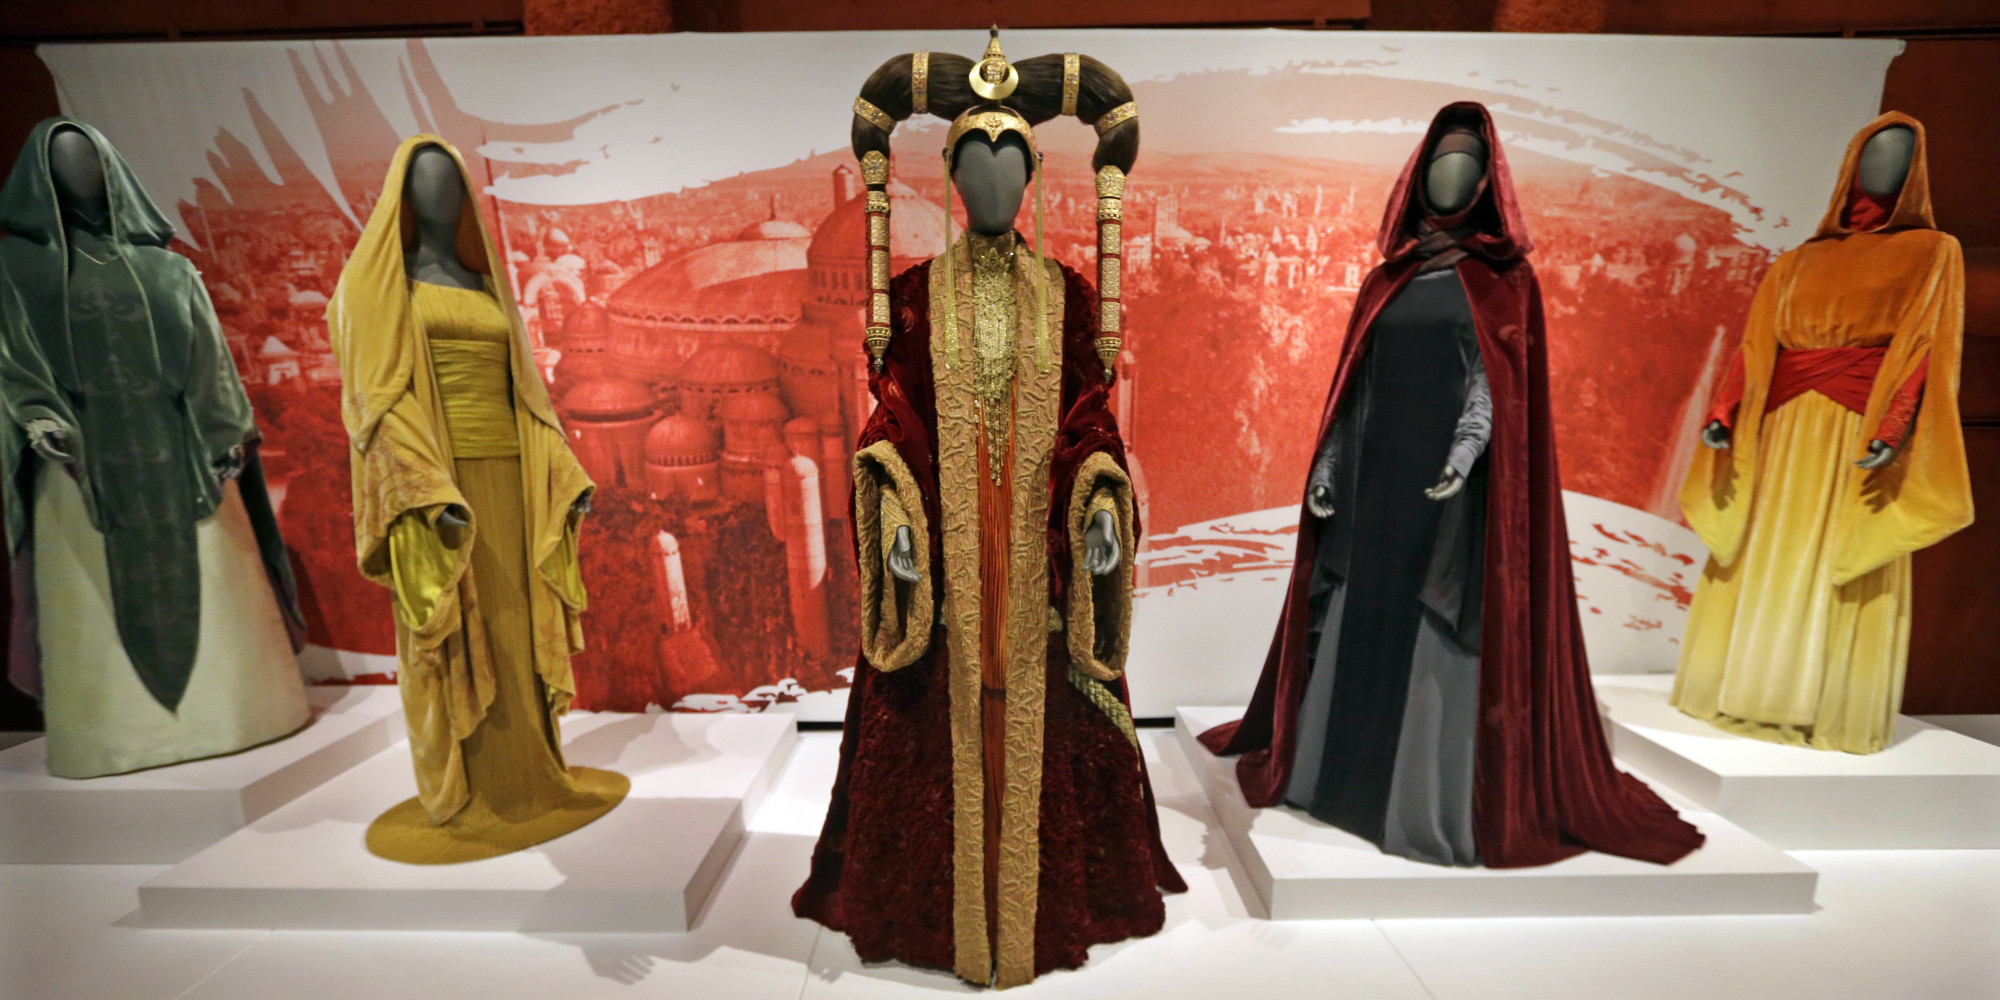 "In this photo taken Thursday, Jan. 29, 2015, the Senate gown of Queen Amidala, center, is seen with handmaiden gowns on display as part of an exhibit on the costumes of Star Wars at Seattle's EMP Museum. The creators of the new exhibit, with 60 original costumes from the six Star Wars movies, are hoping to gather geeks, fashionistas and movie fans together to discuss how clothing helps set the scene. The exhibit, ""Rebel, Jedi, Princess, Queen: Star Wars and the Power of Costume,"" will be in Seattle through early October and then travel across the United States through 2020. (AP Photo/Elaine Thompson)"